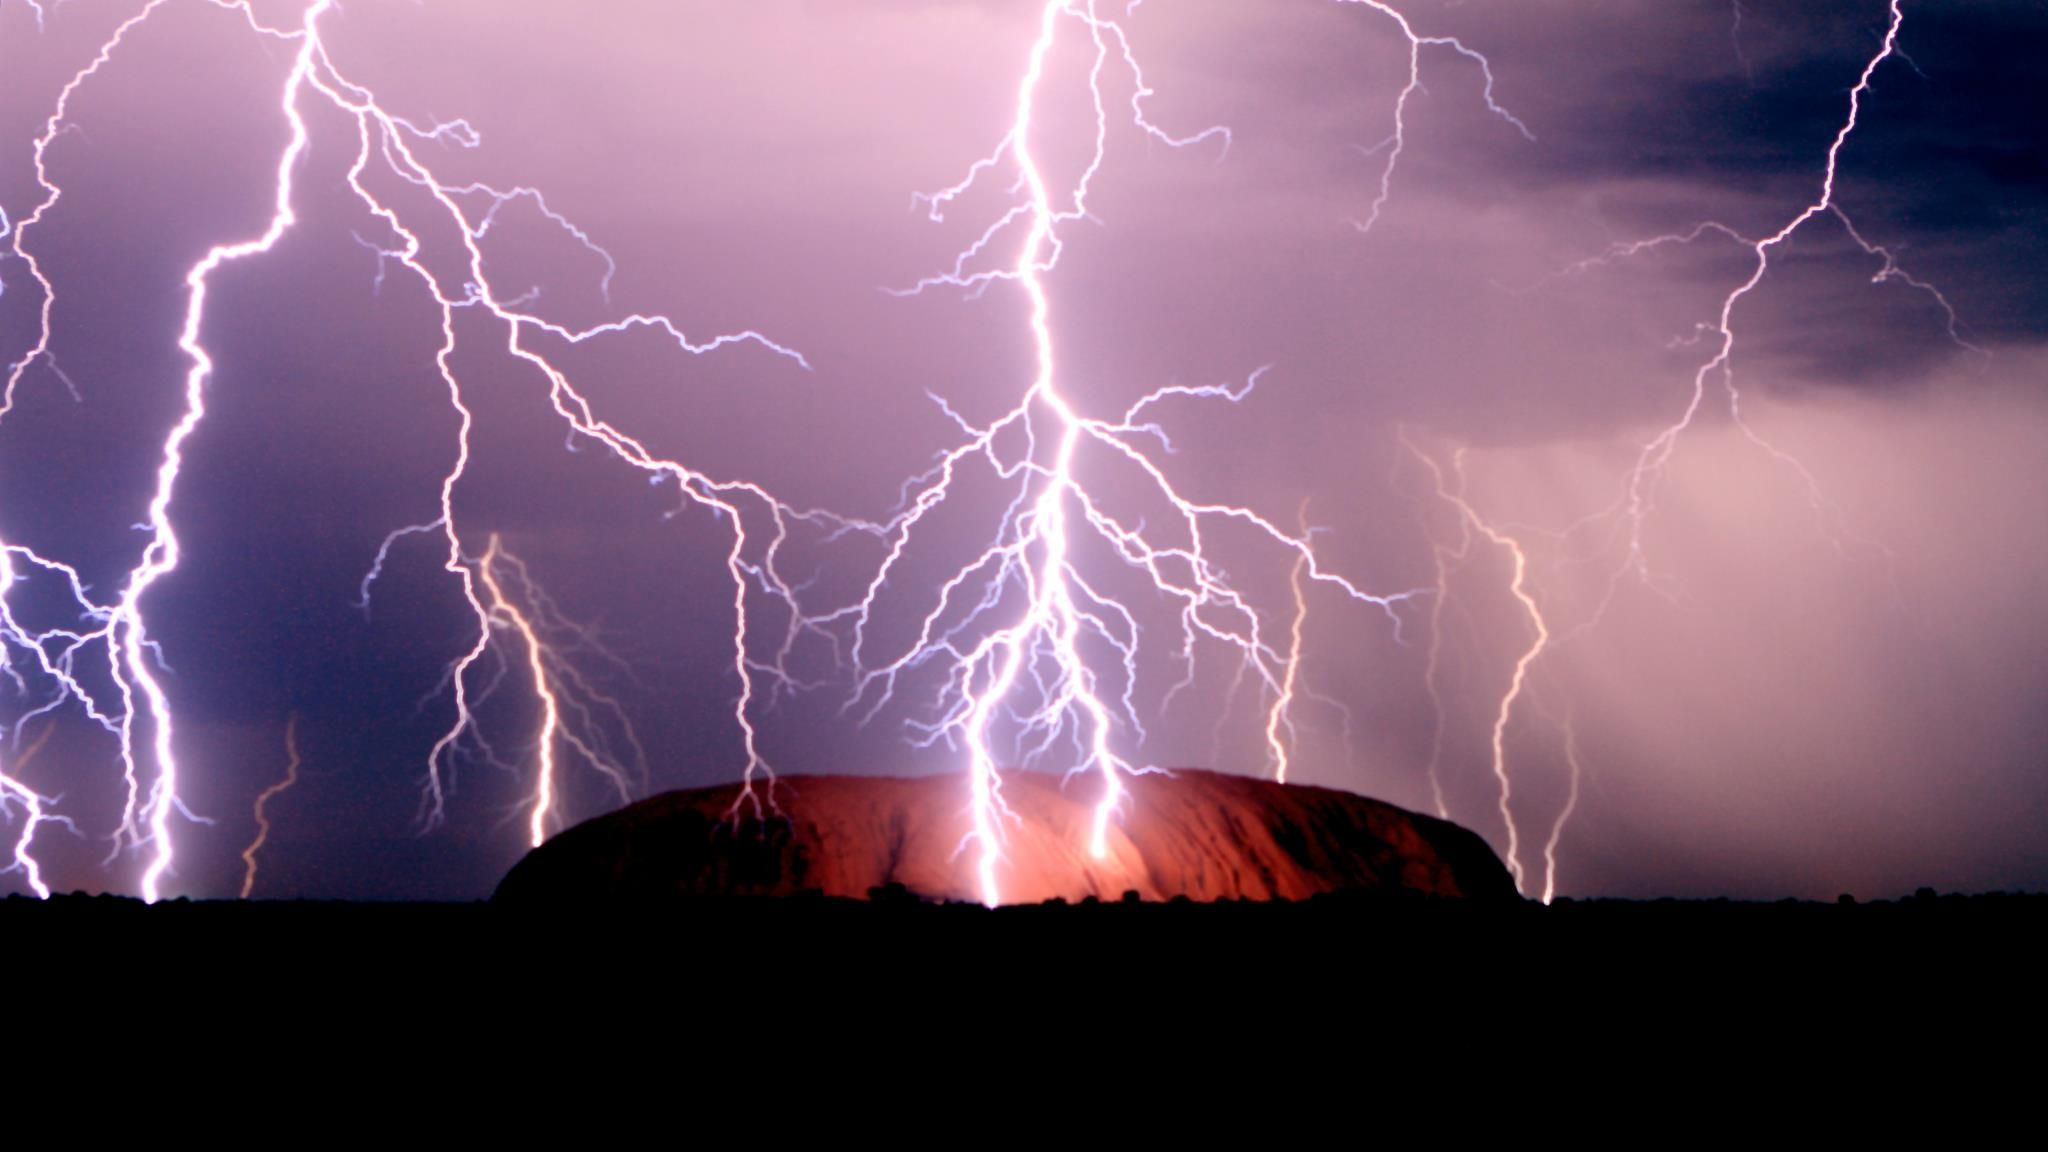 lighting strikes Uluru